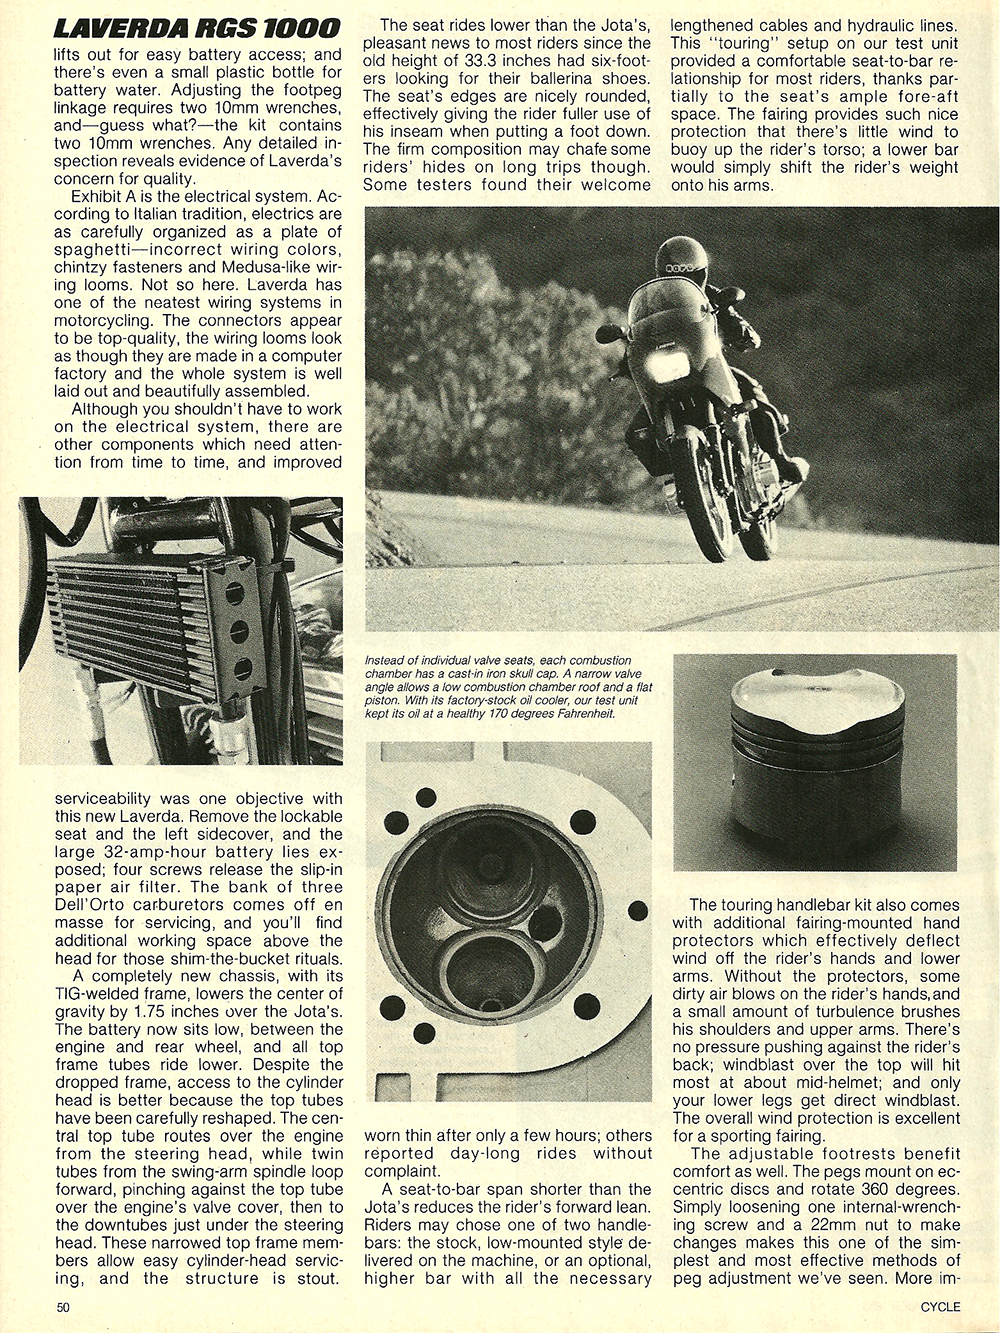 1984 Laverda RGS 1000 road test 7.jpg